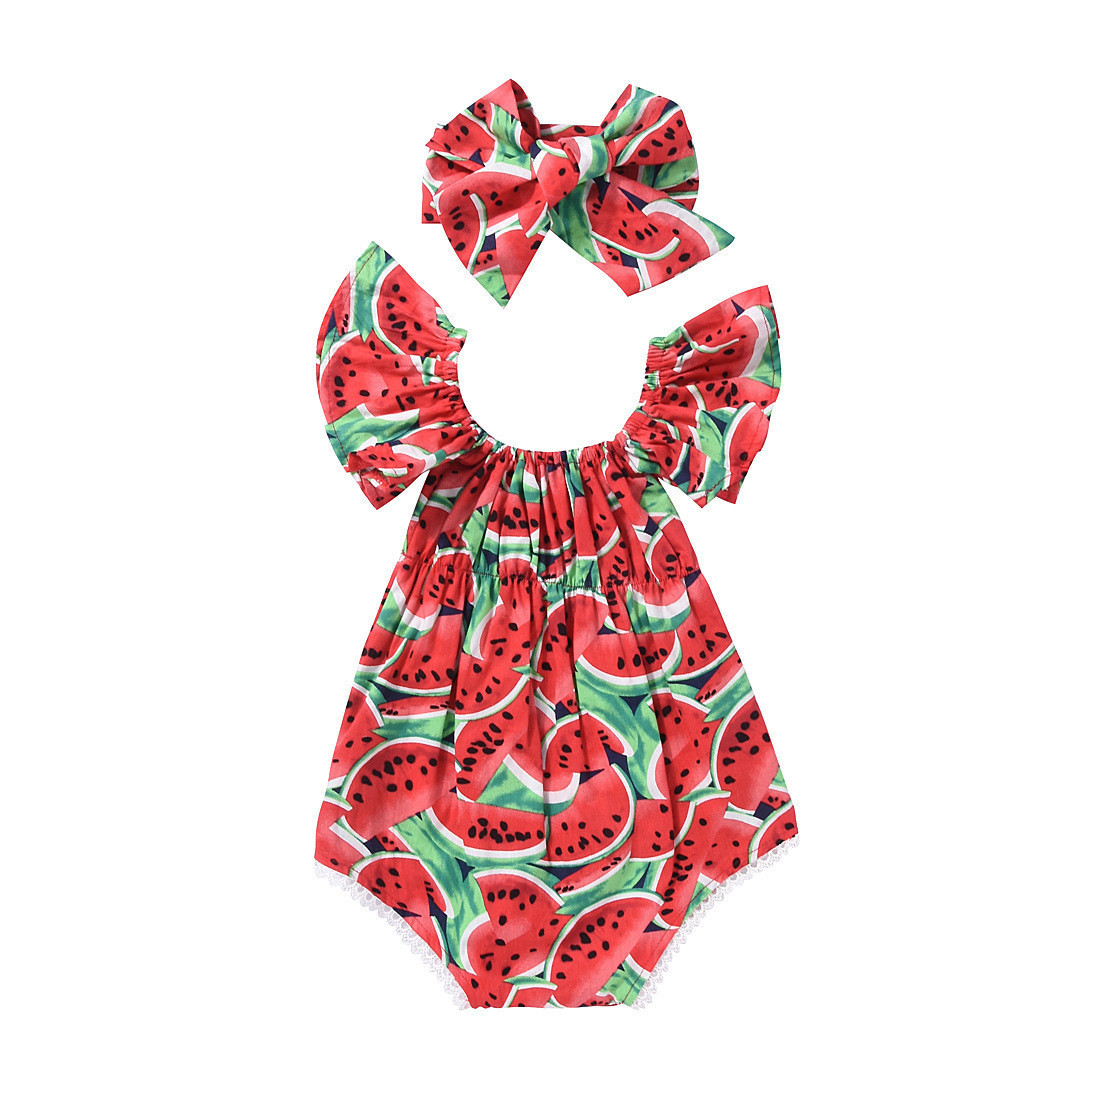 Newborn Watermelon Baby Clothes Toddler Boys Bodysuit Baby Clothing Summer Sleeveless Girls Jumpsuit Kids Outfits Playsuit summer 2017 leopard baby girl clothes newborn infant baby girls romper bodysuit headband 2pcs outfits toddler kids clothing set